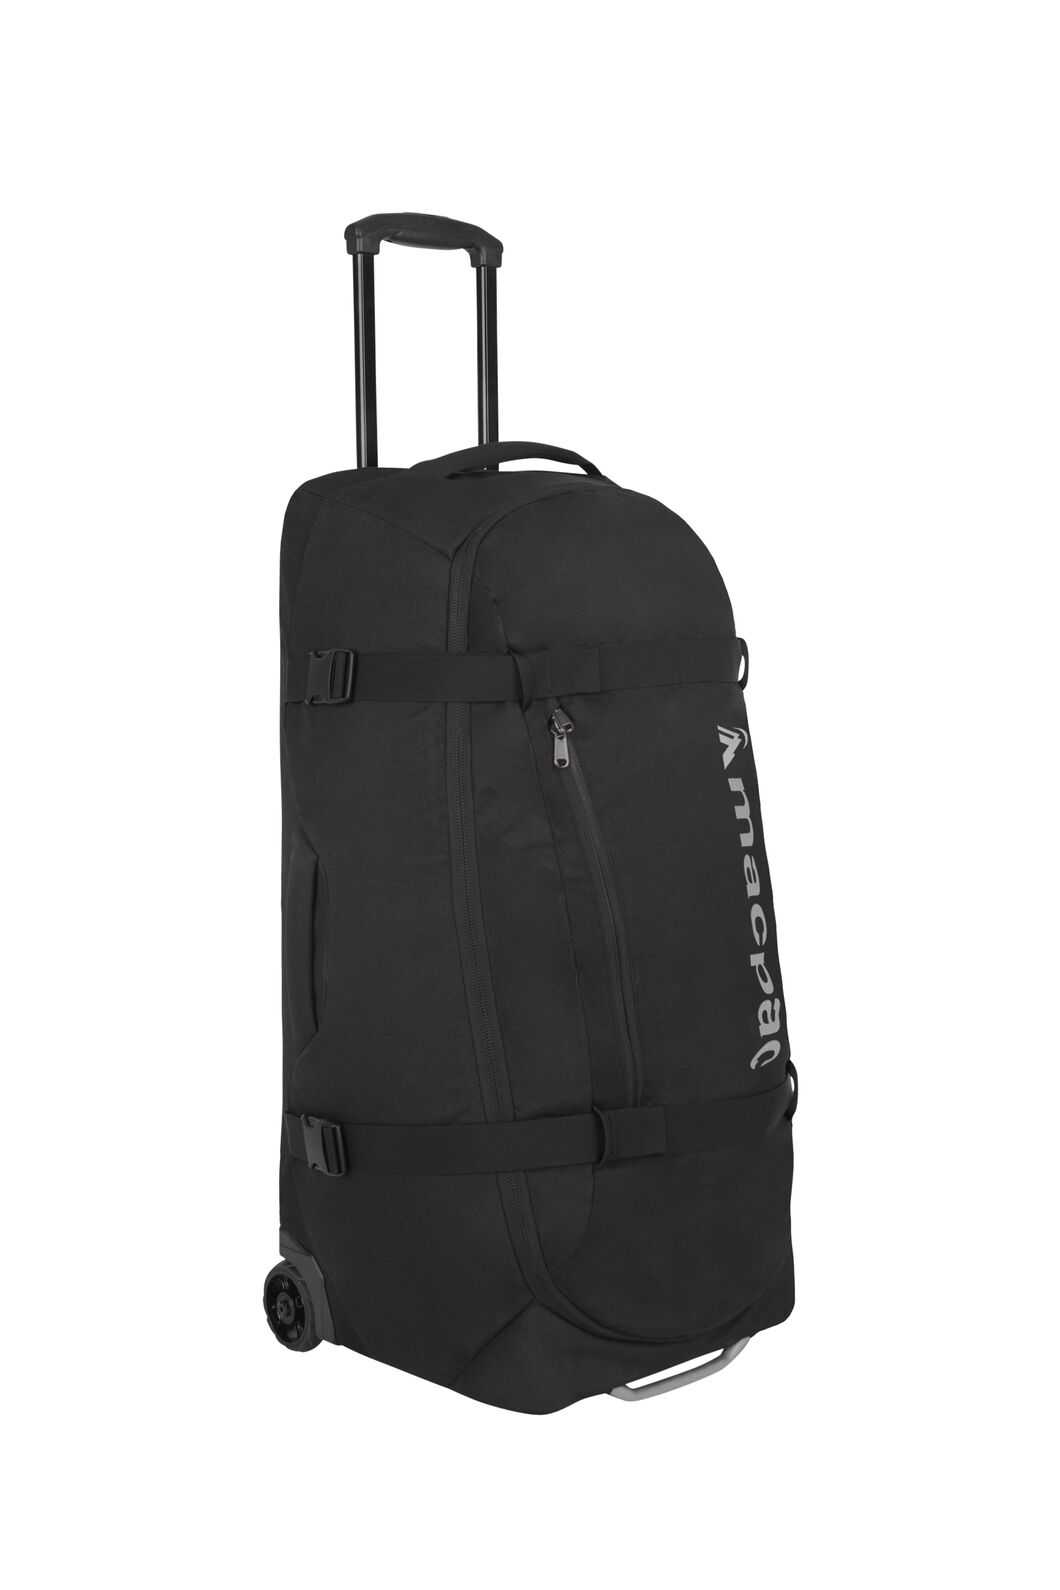 Macpac Global 80L Travel Bag, Black, hi-res